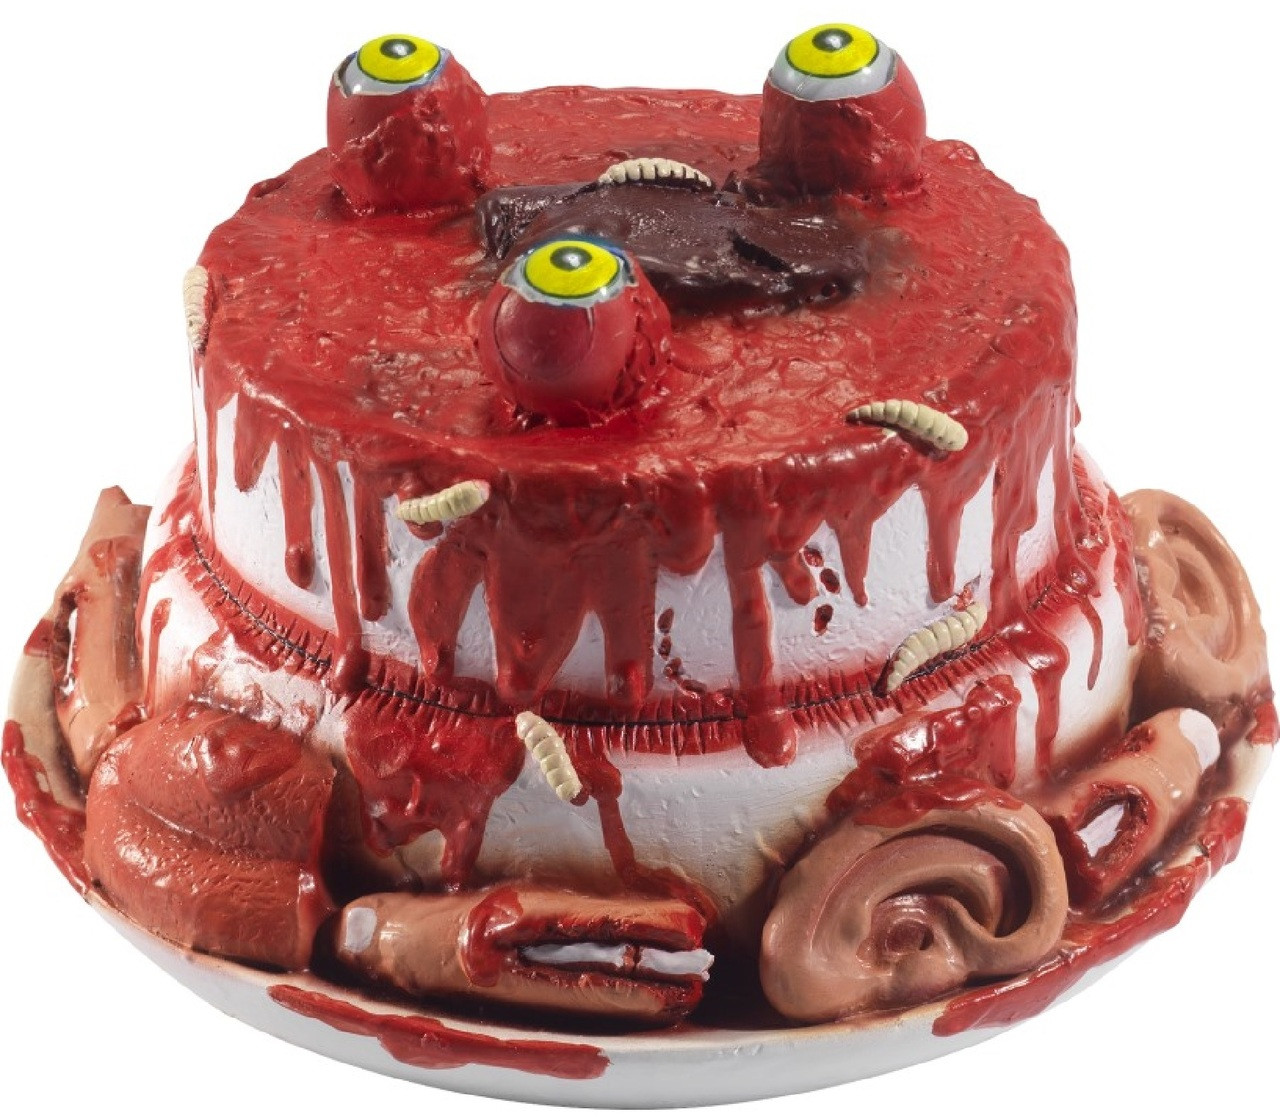 Halloween Gourmet Zombie Cake Party Prop Image 1